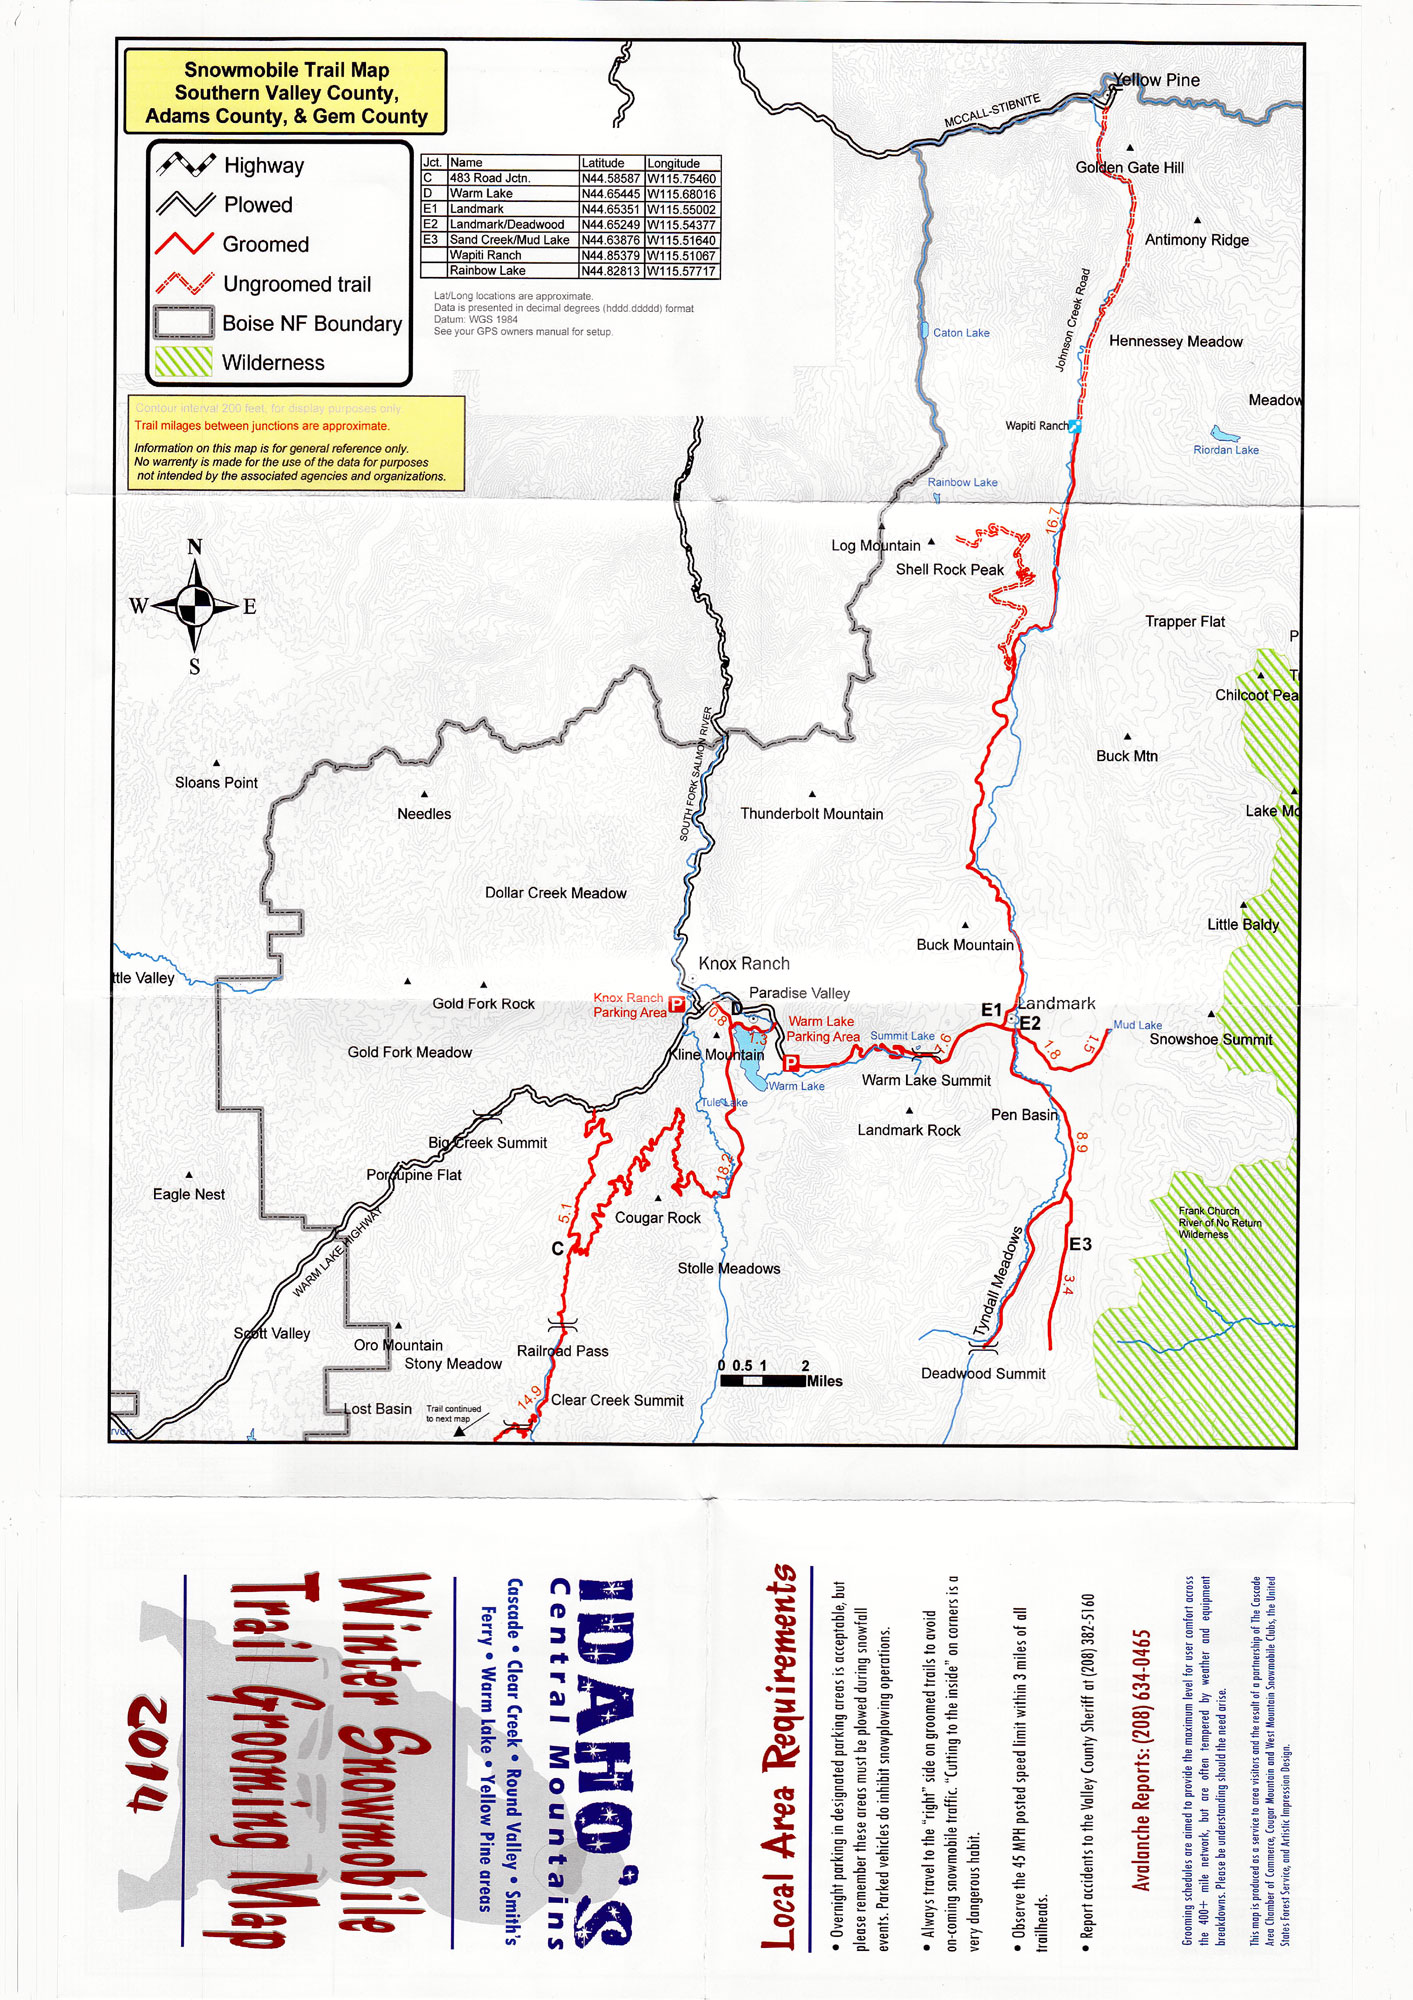 Snowmobile Trail Maps – McCall, Donnelly, Cascade & Smiths